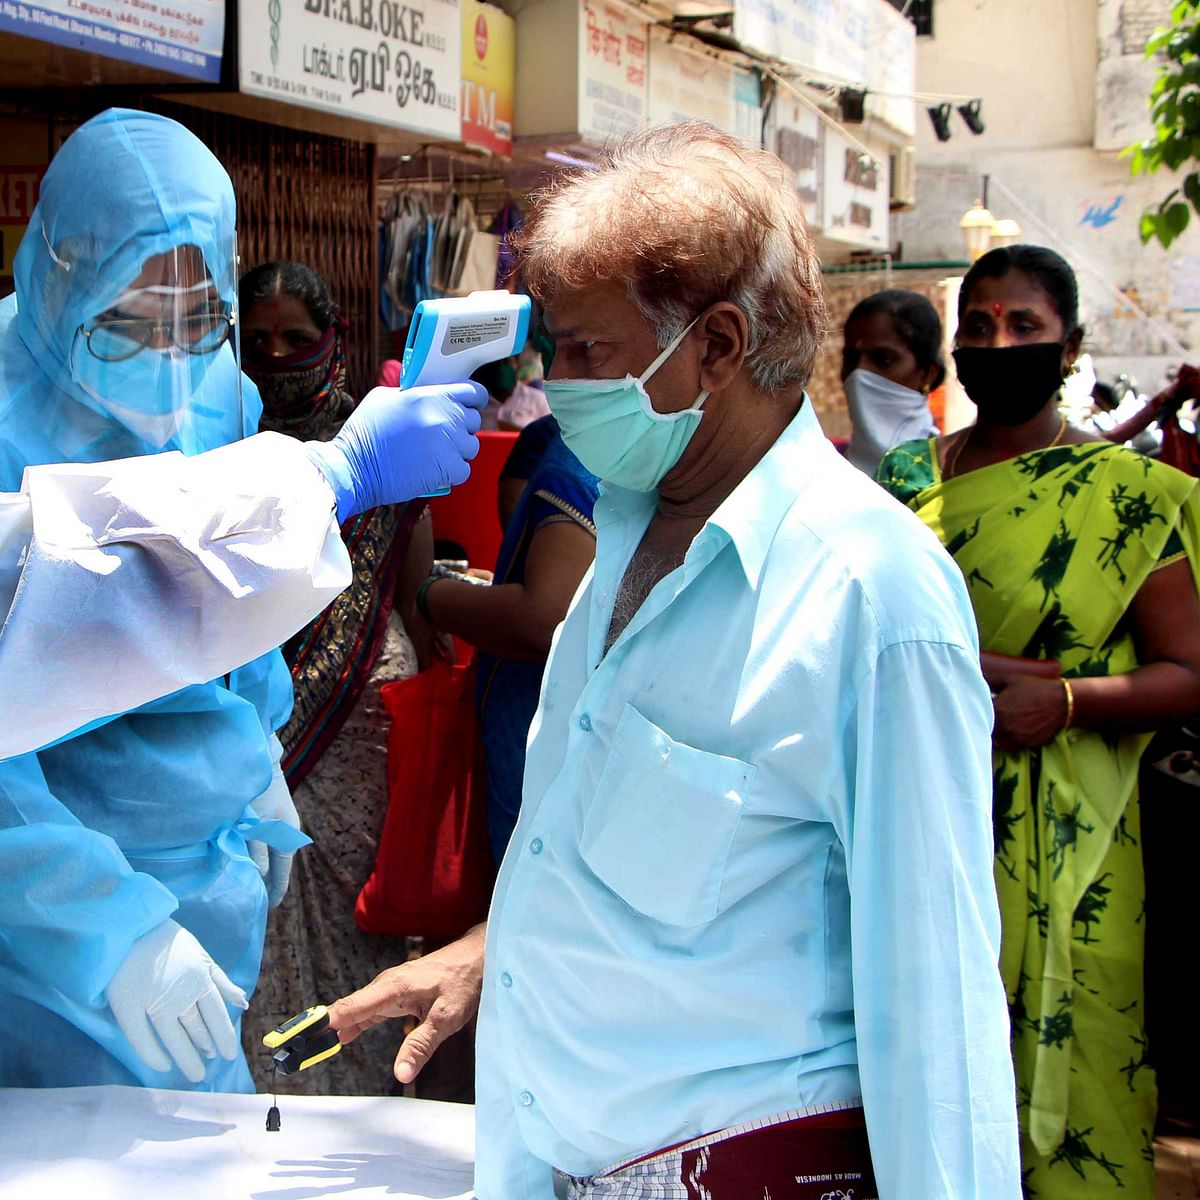 Coronavirus in Maharashtra: 6,738 new COVID-19 cases reported on Wednesday; 8,430 recover, 91 die